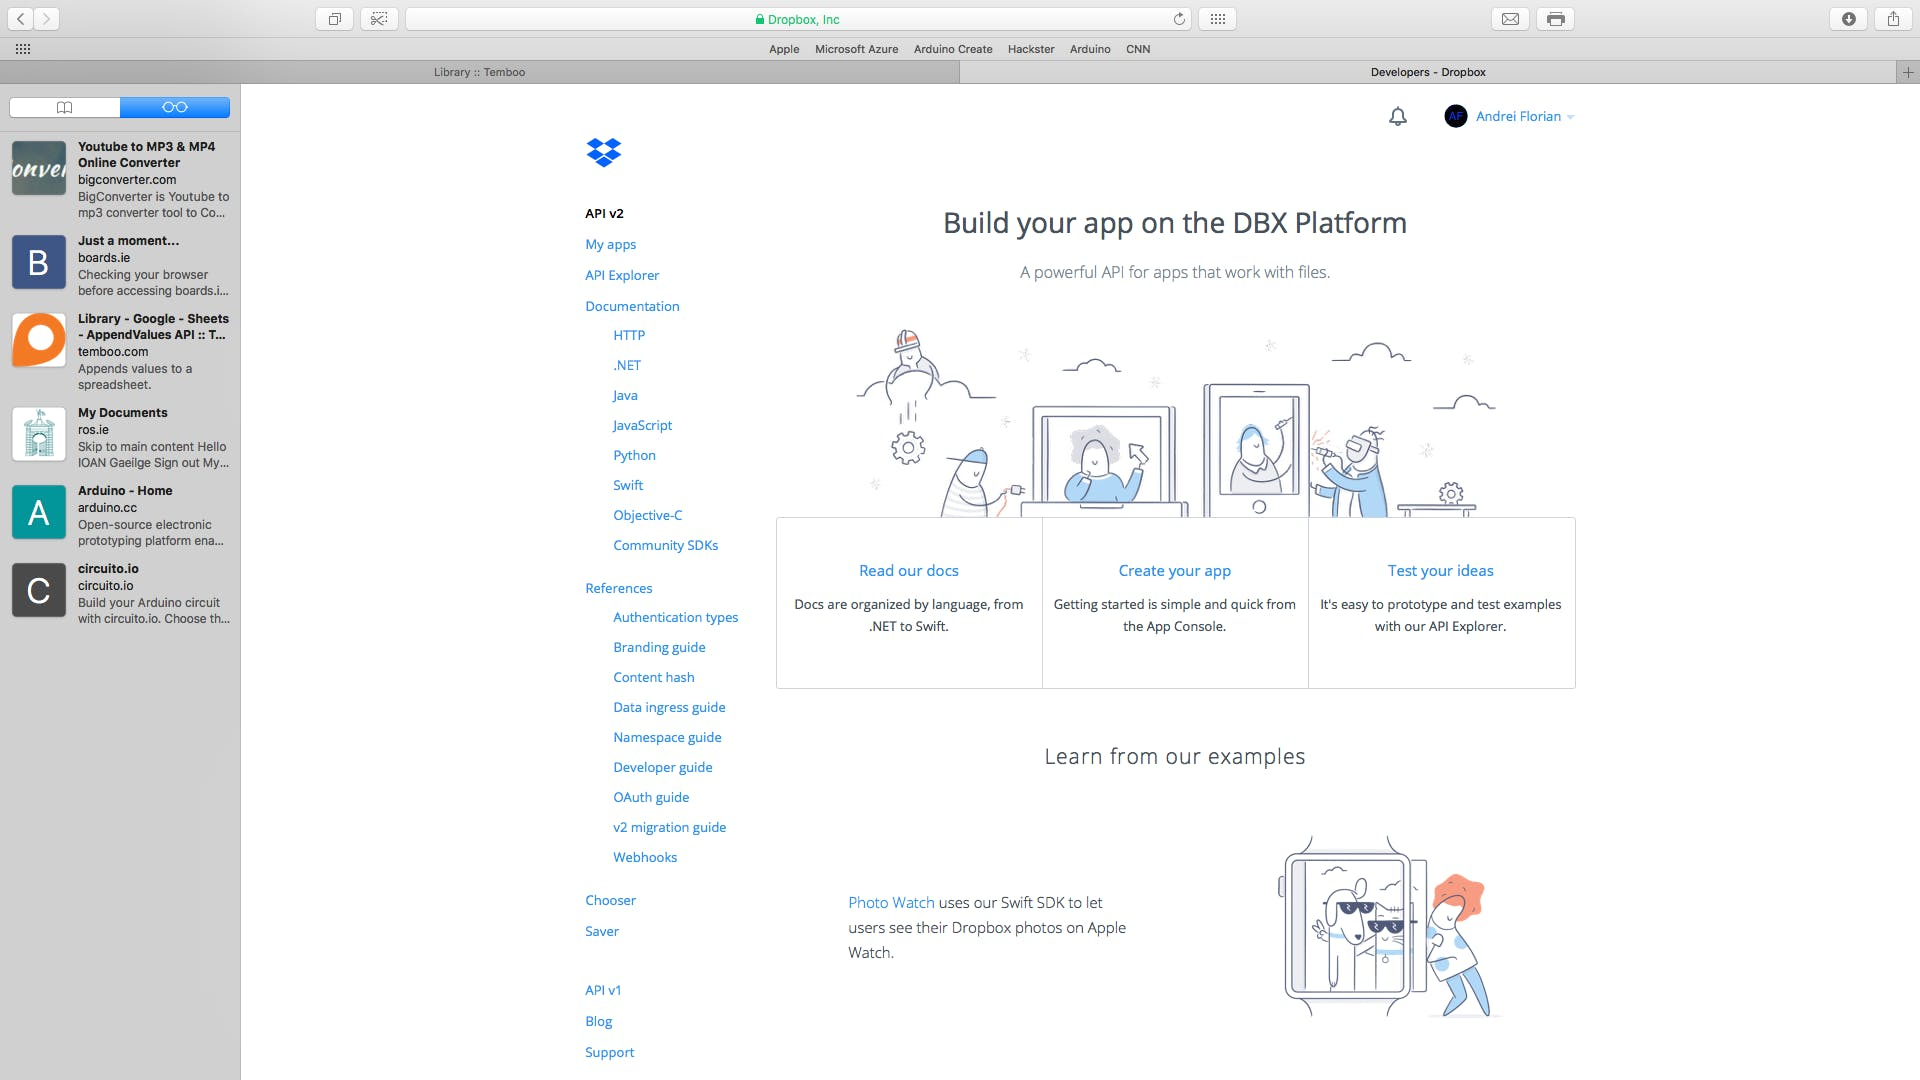 Open Dropbox Developer by searching for it on Google